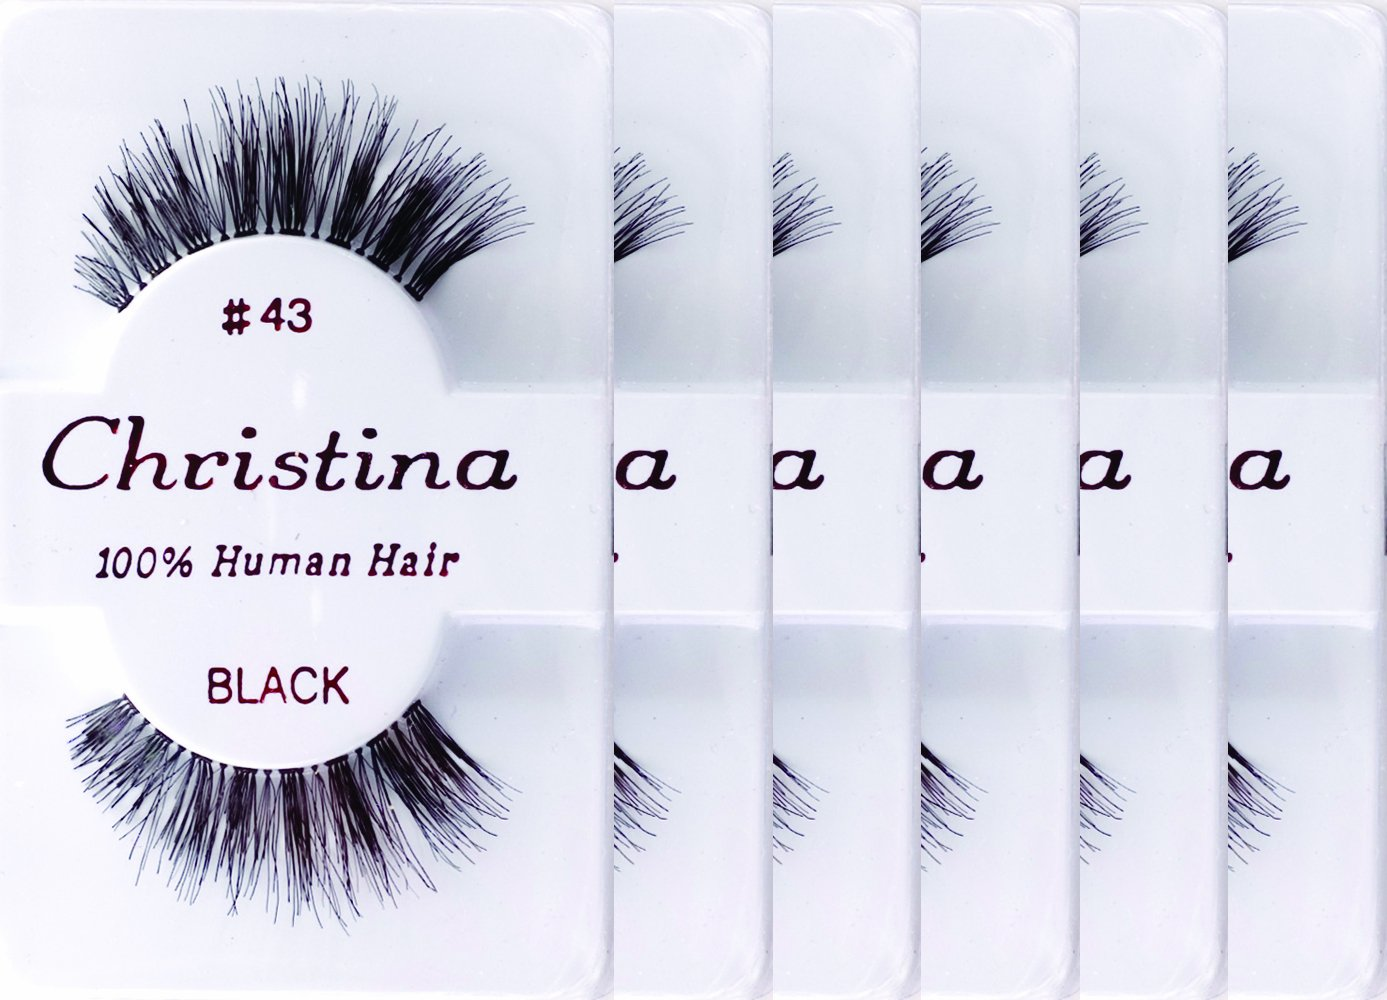 Christina 6packs Eyelashes - #43